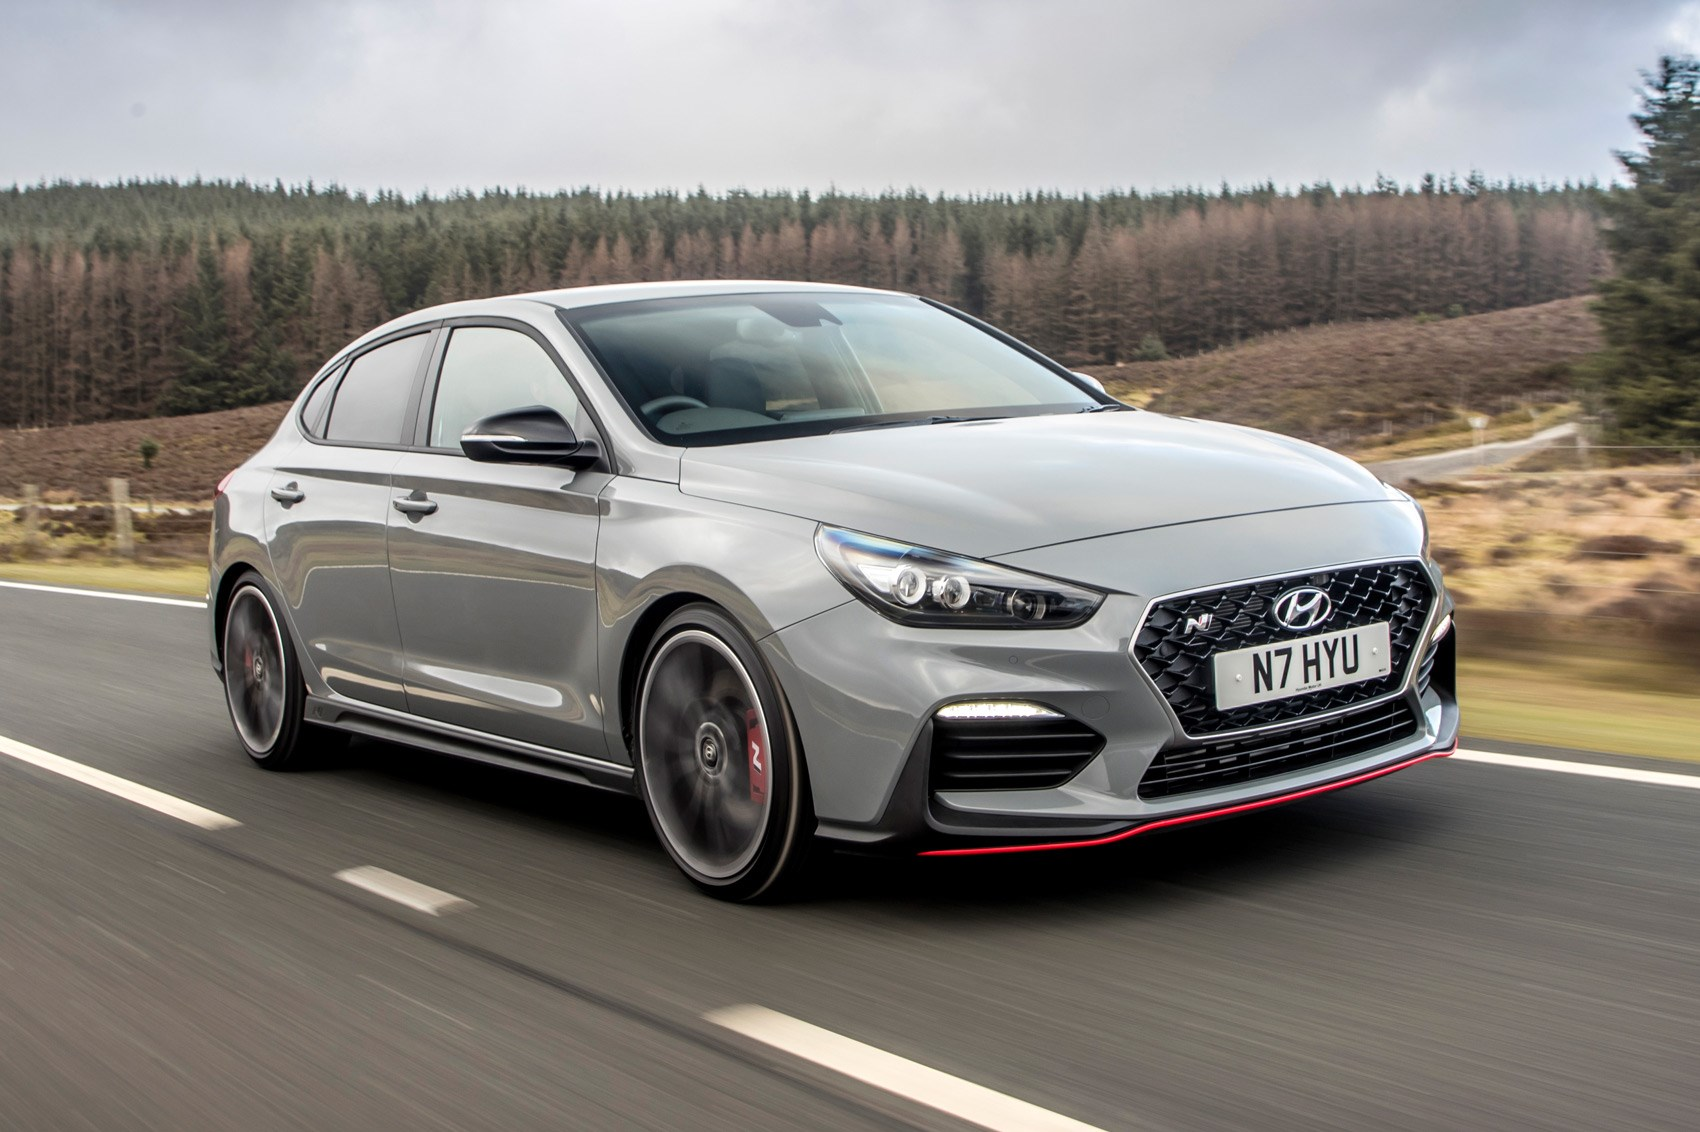 hyundai i30 fastback n 2019 review grown up hot hatch. Black Bedroom Furniture Sets. Home Design Ideas